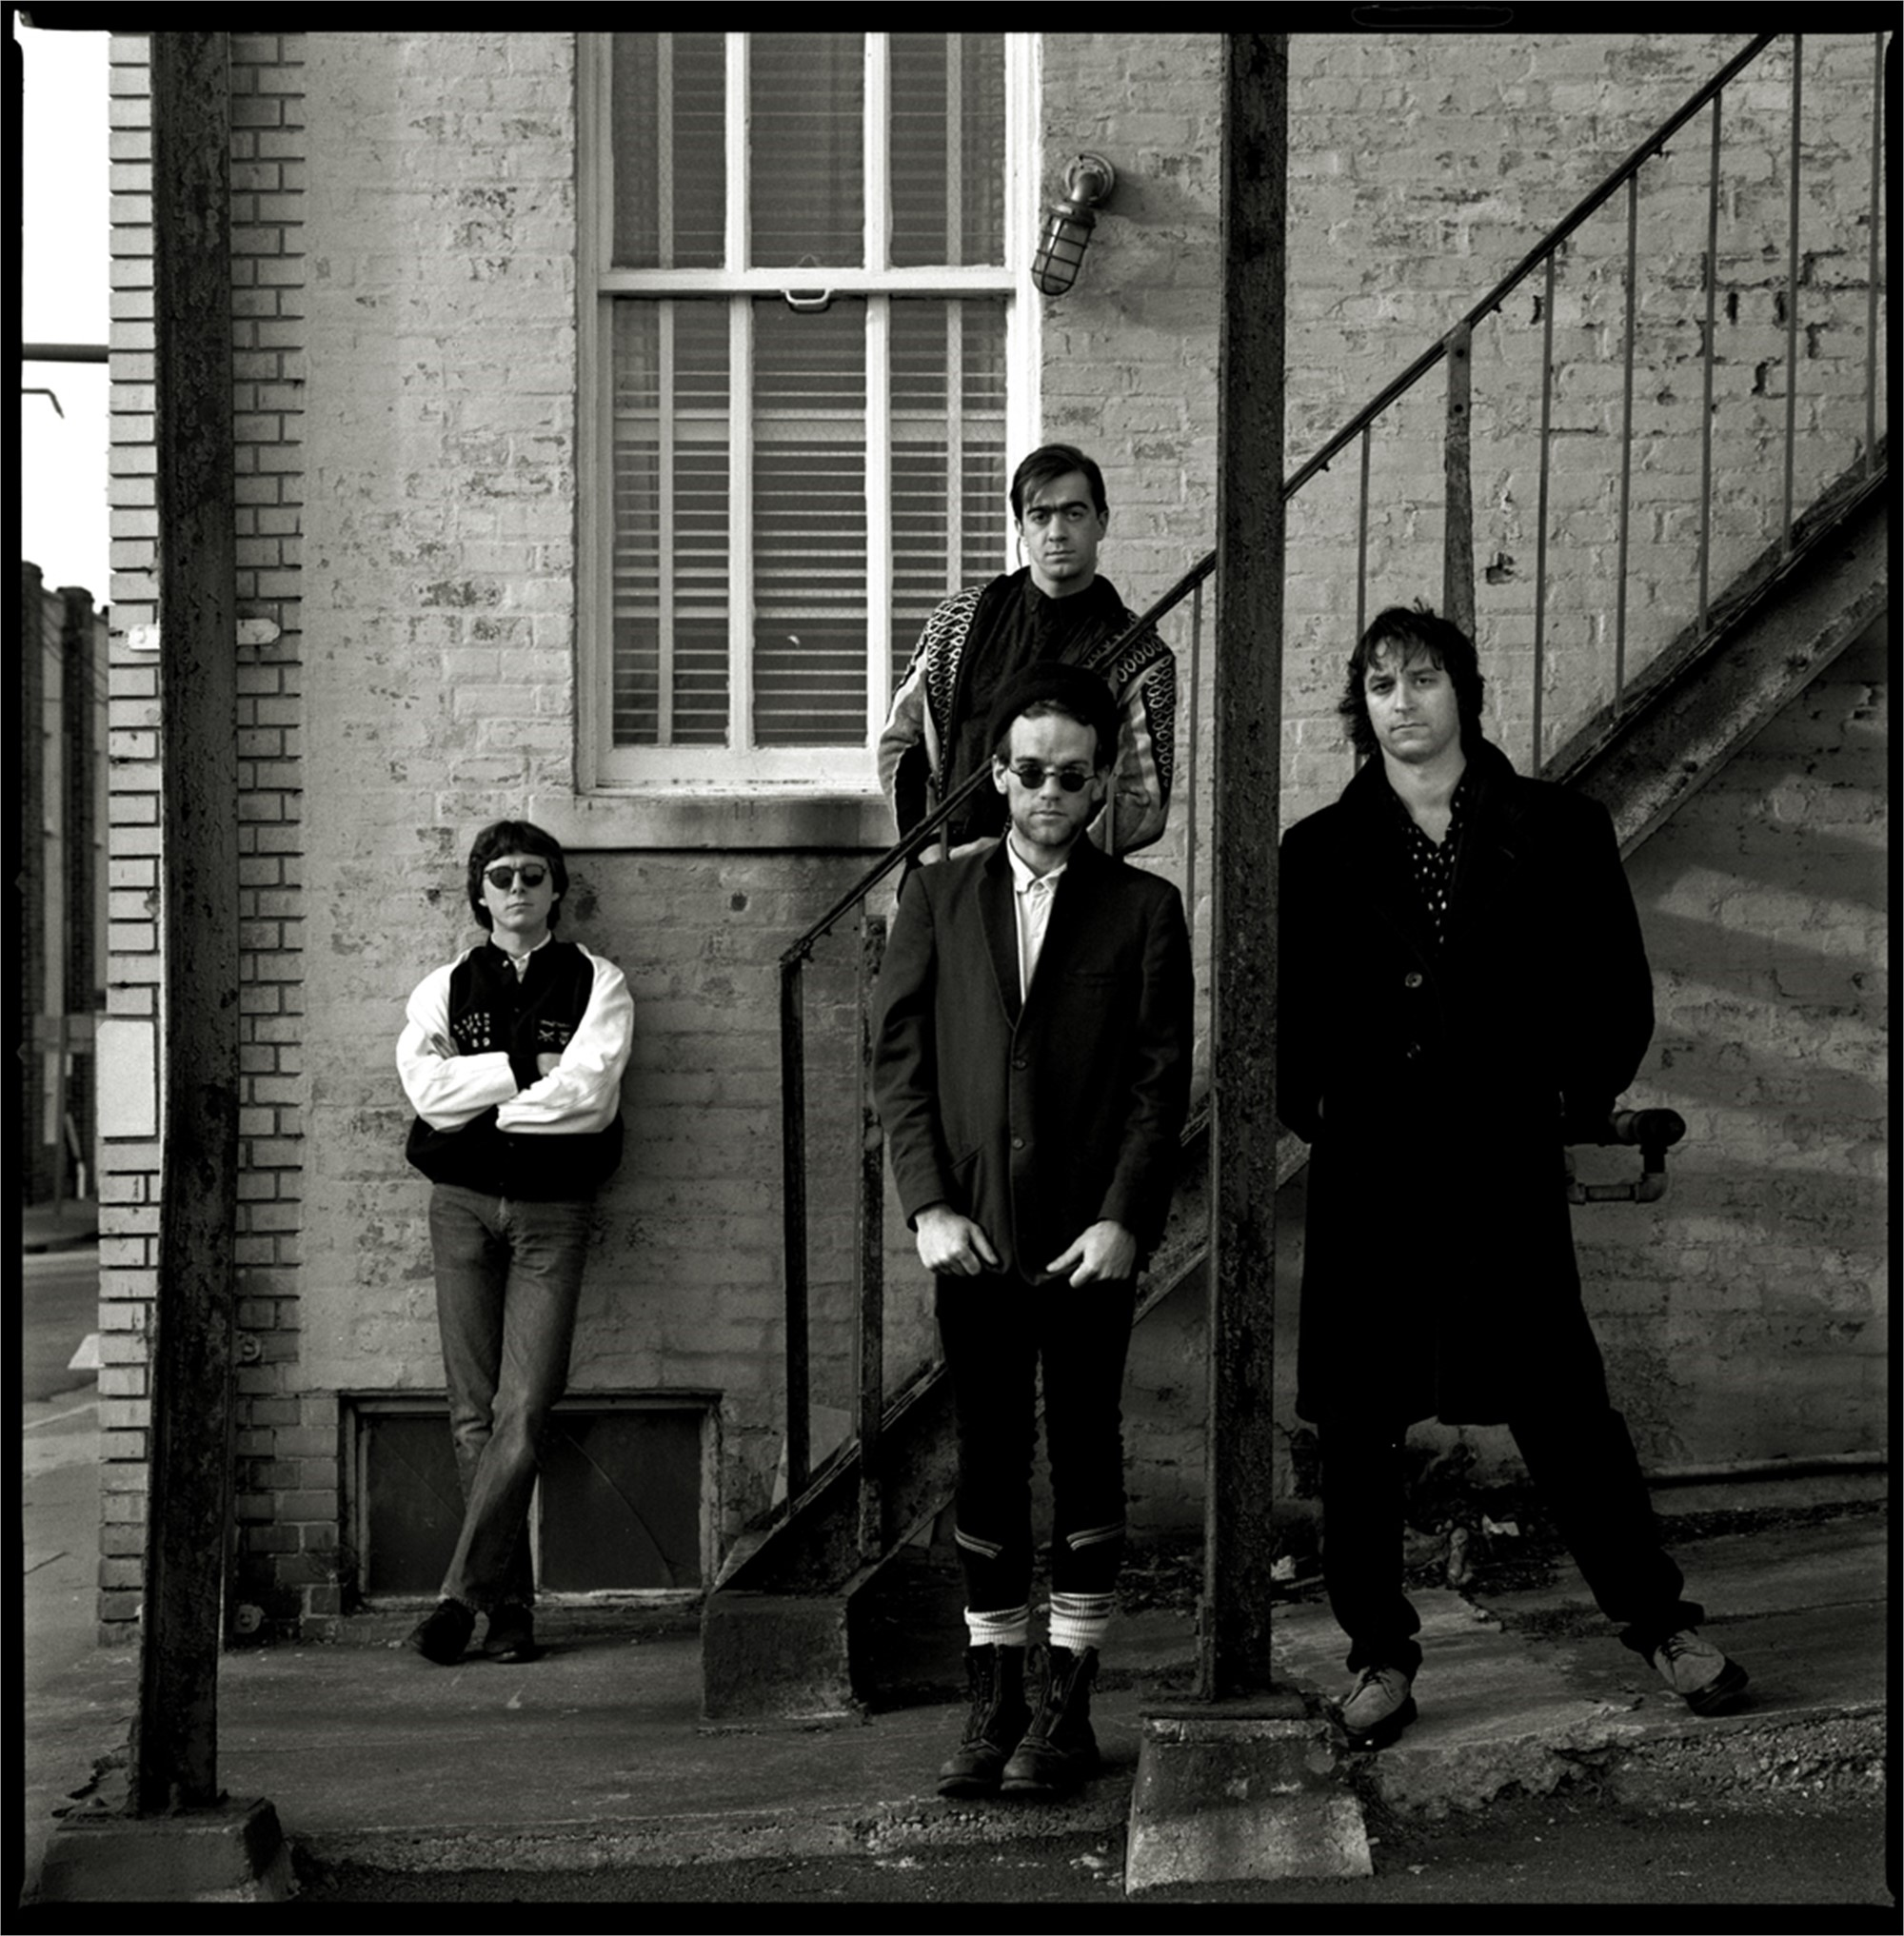 89013 R.E.M. Standing 1 BW by Timothy White